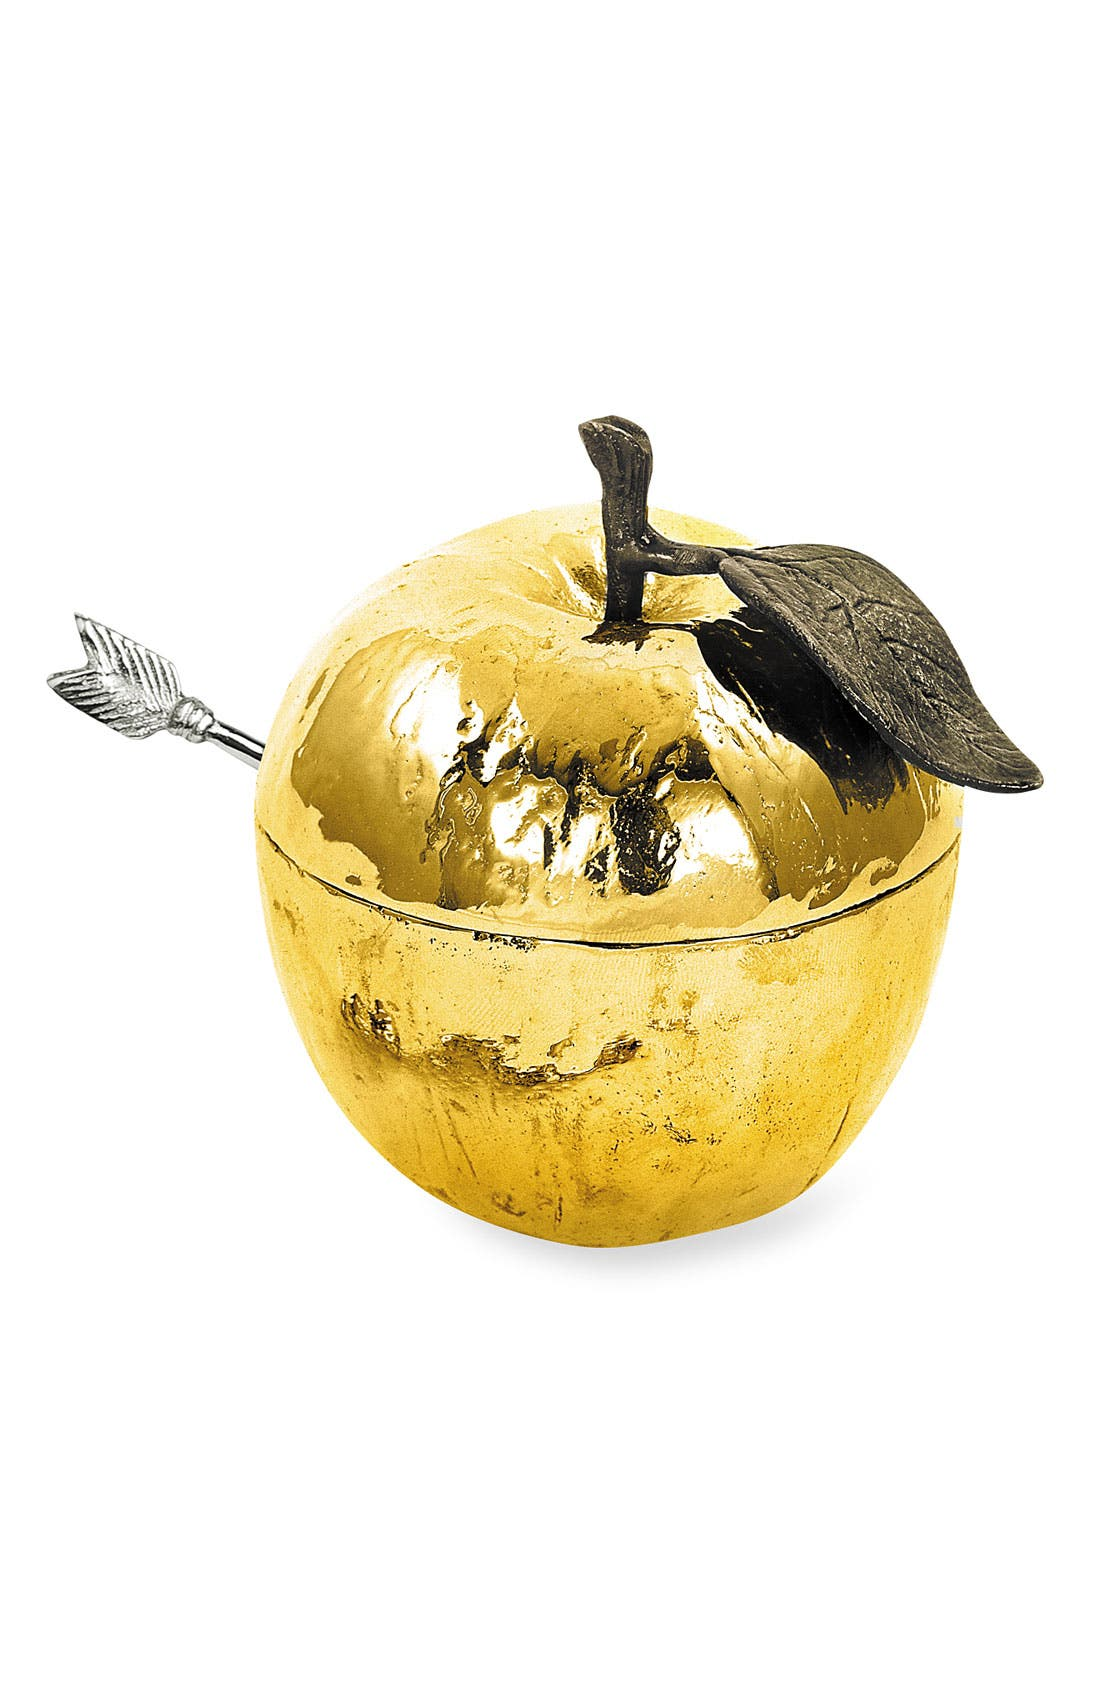 Main Image - Michael Aram 'Apple' Honey Pot with Spoon